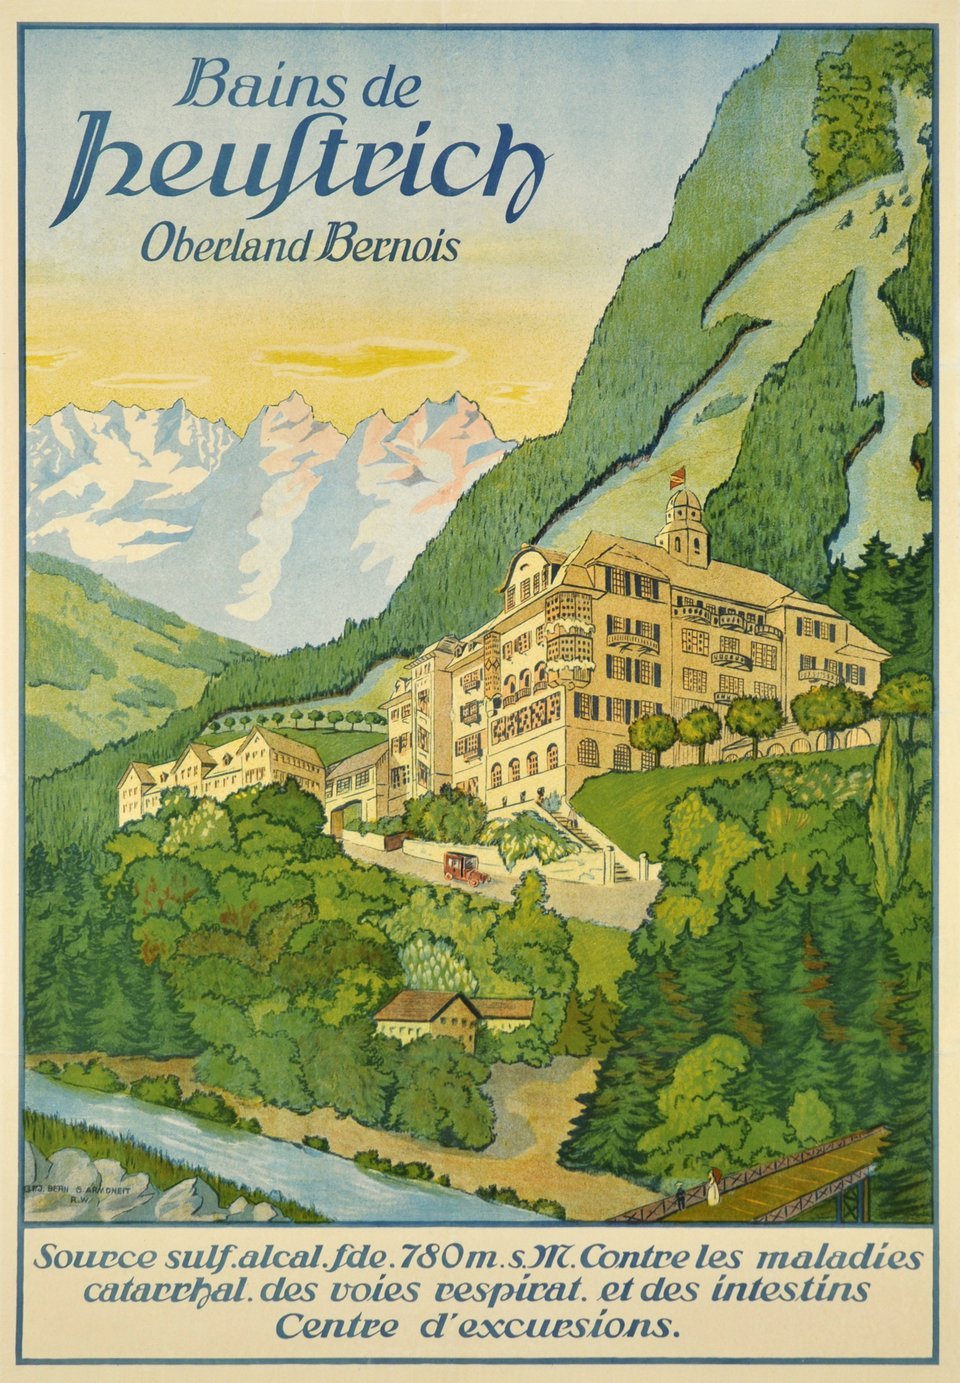 Heustrich Bains , Oberland Bernois. – Affiche ancienne – ANONYME – 1915